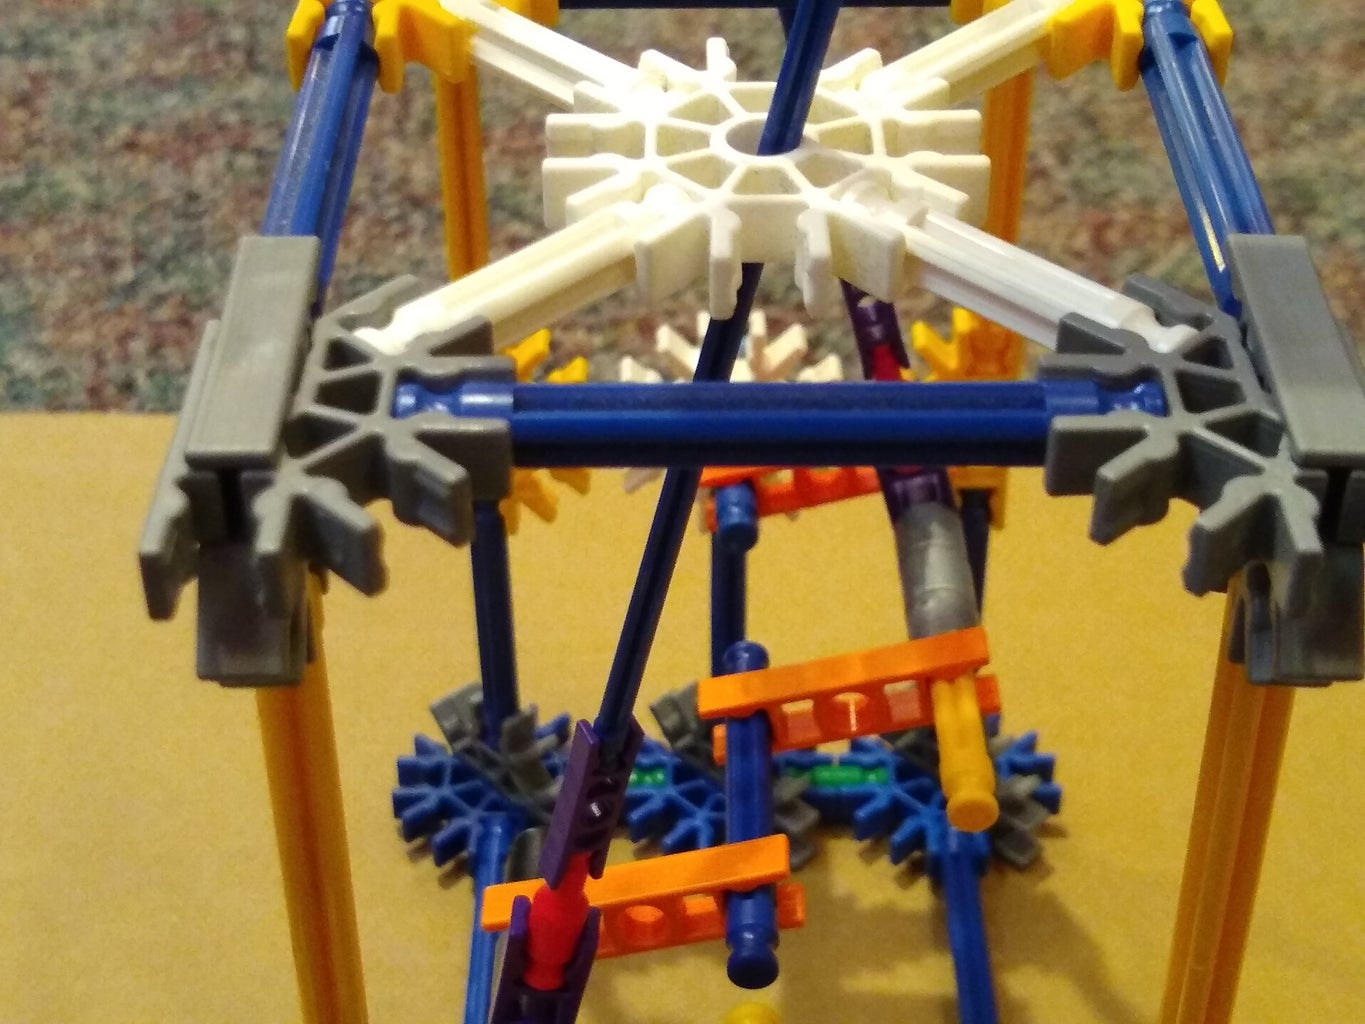 Attach Origami Stick Puppets to the Crank Shaft As Shown